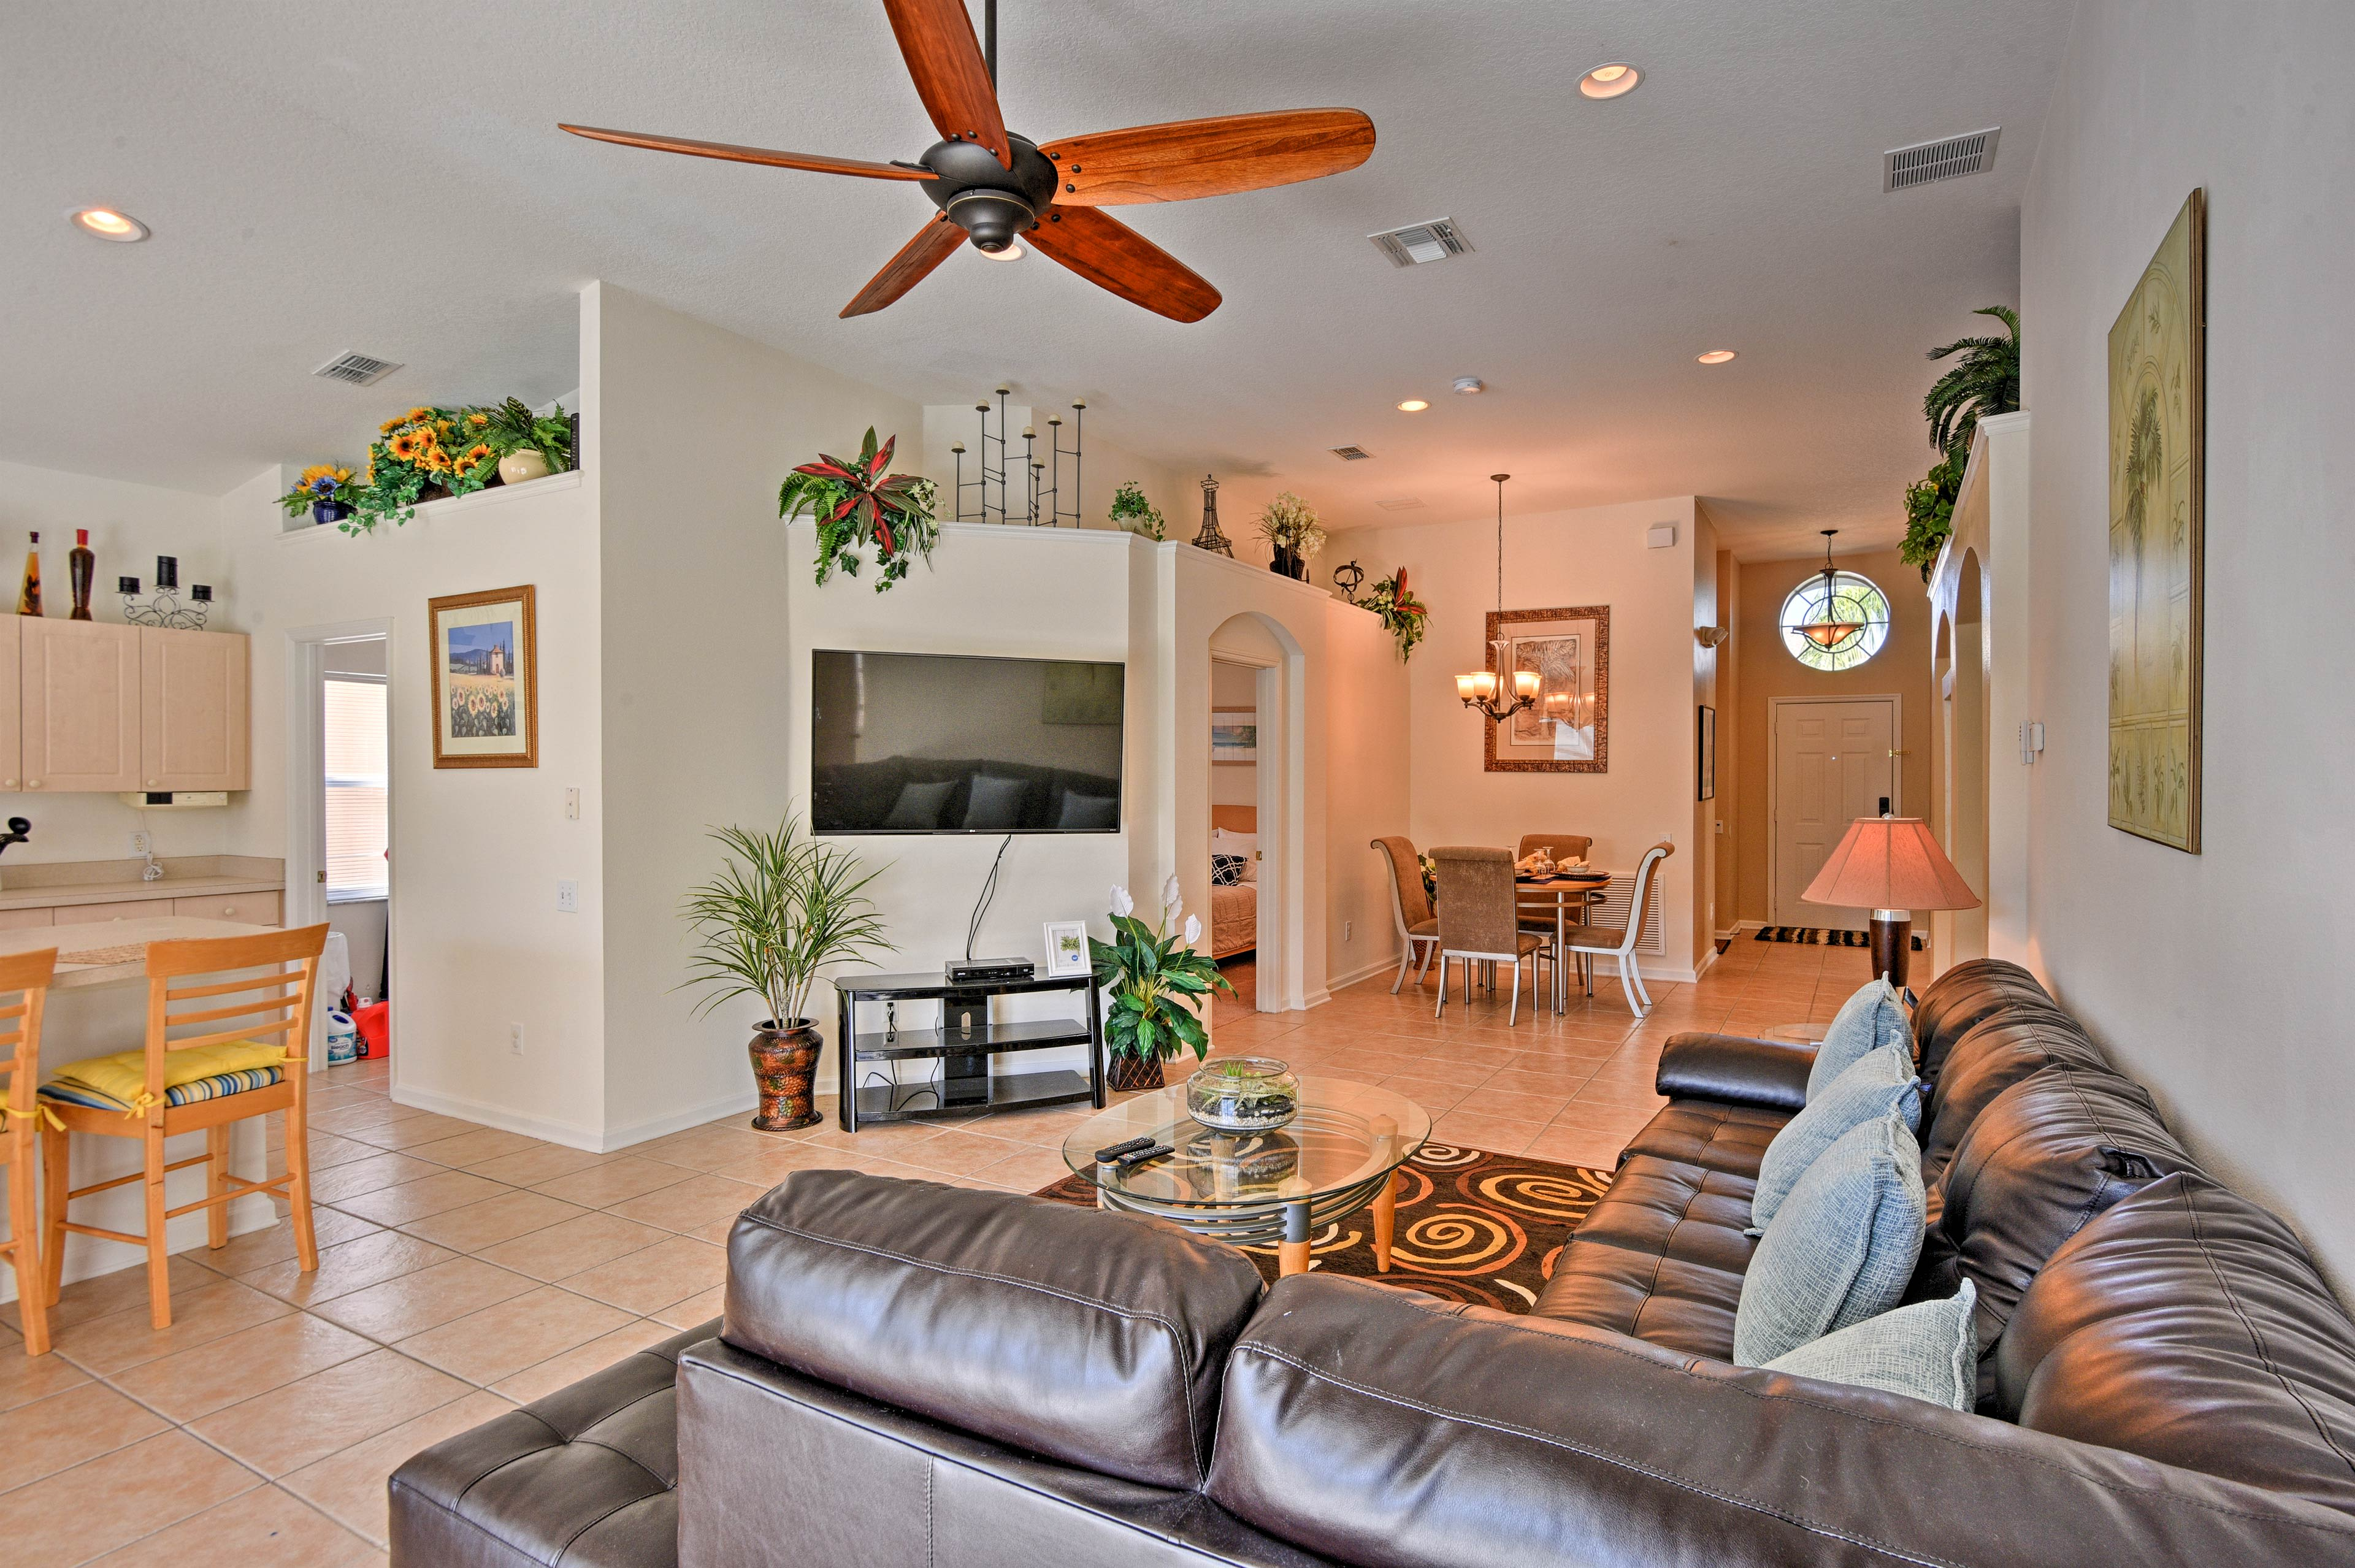 Tropical decor sets the stage for your next Kissimmee getaway!